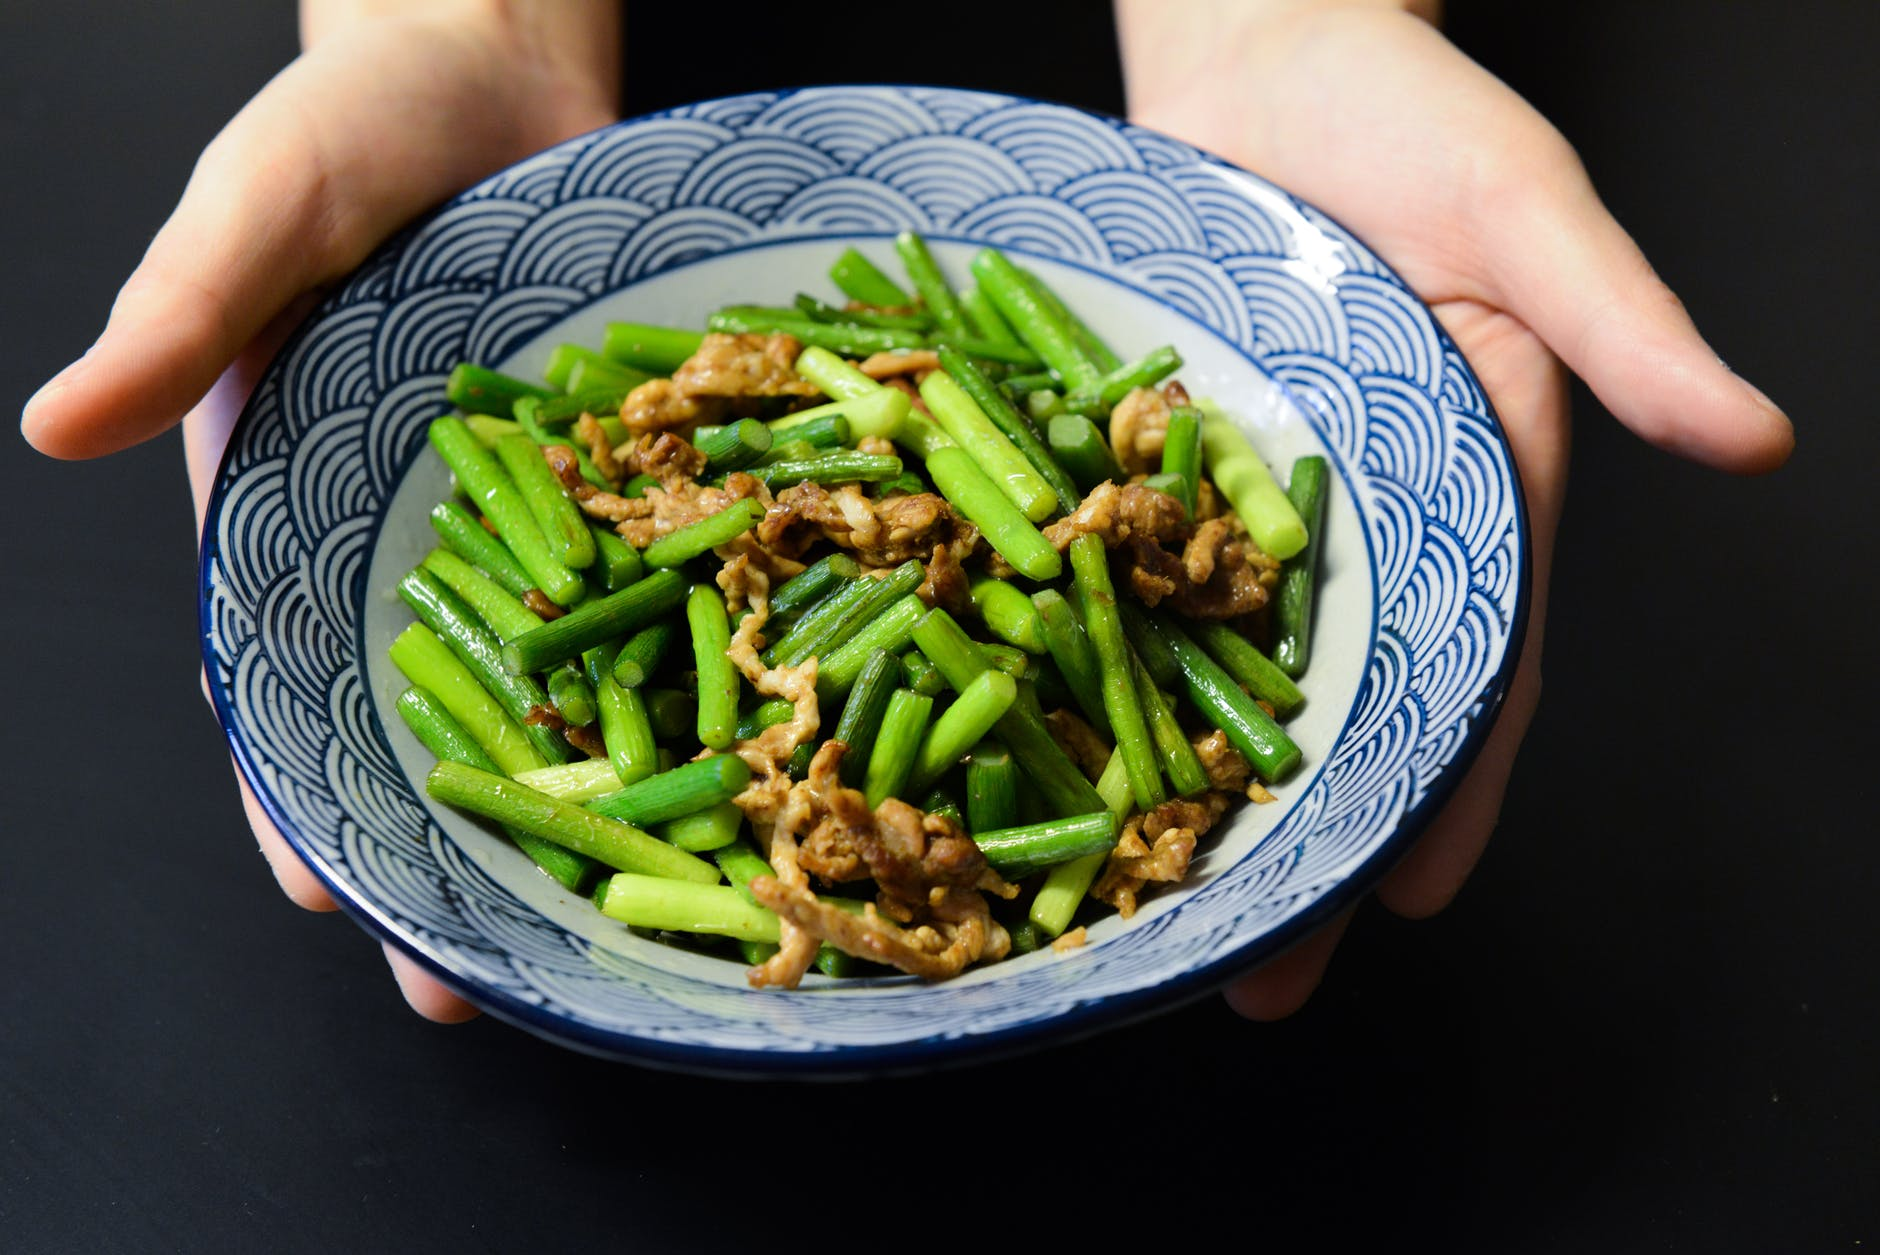 What to eat at chinese restaurant on keto diet